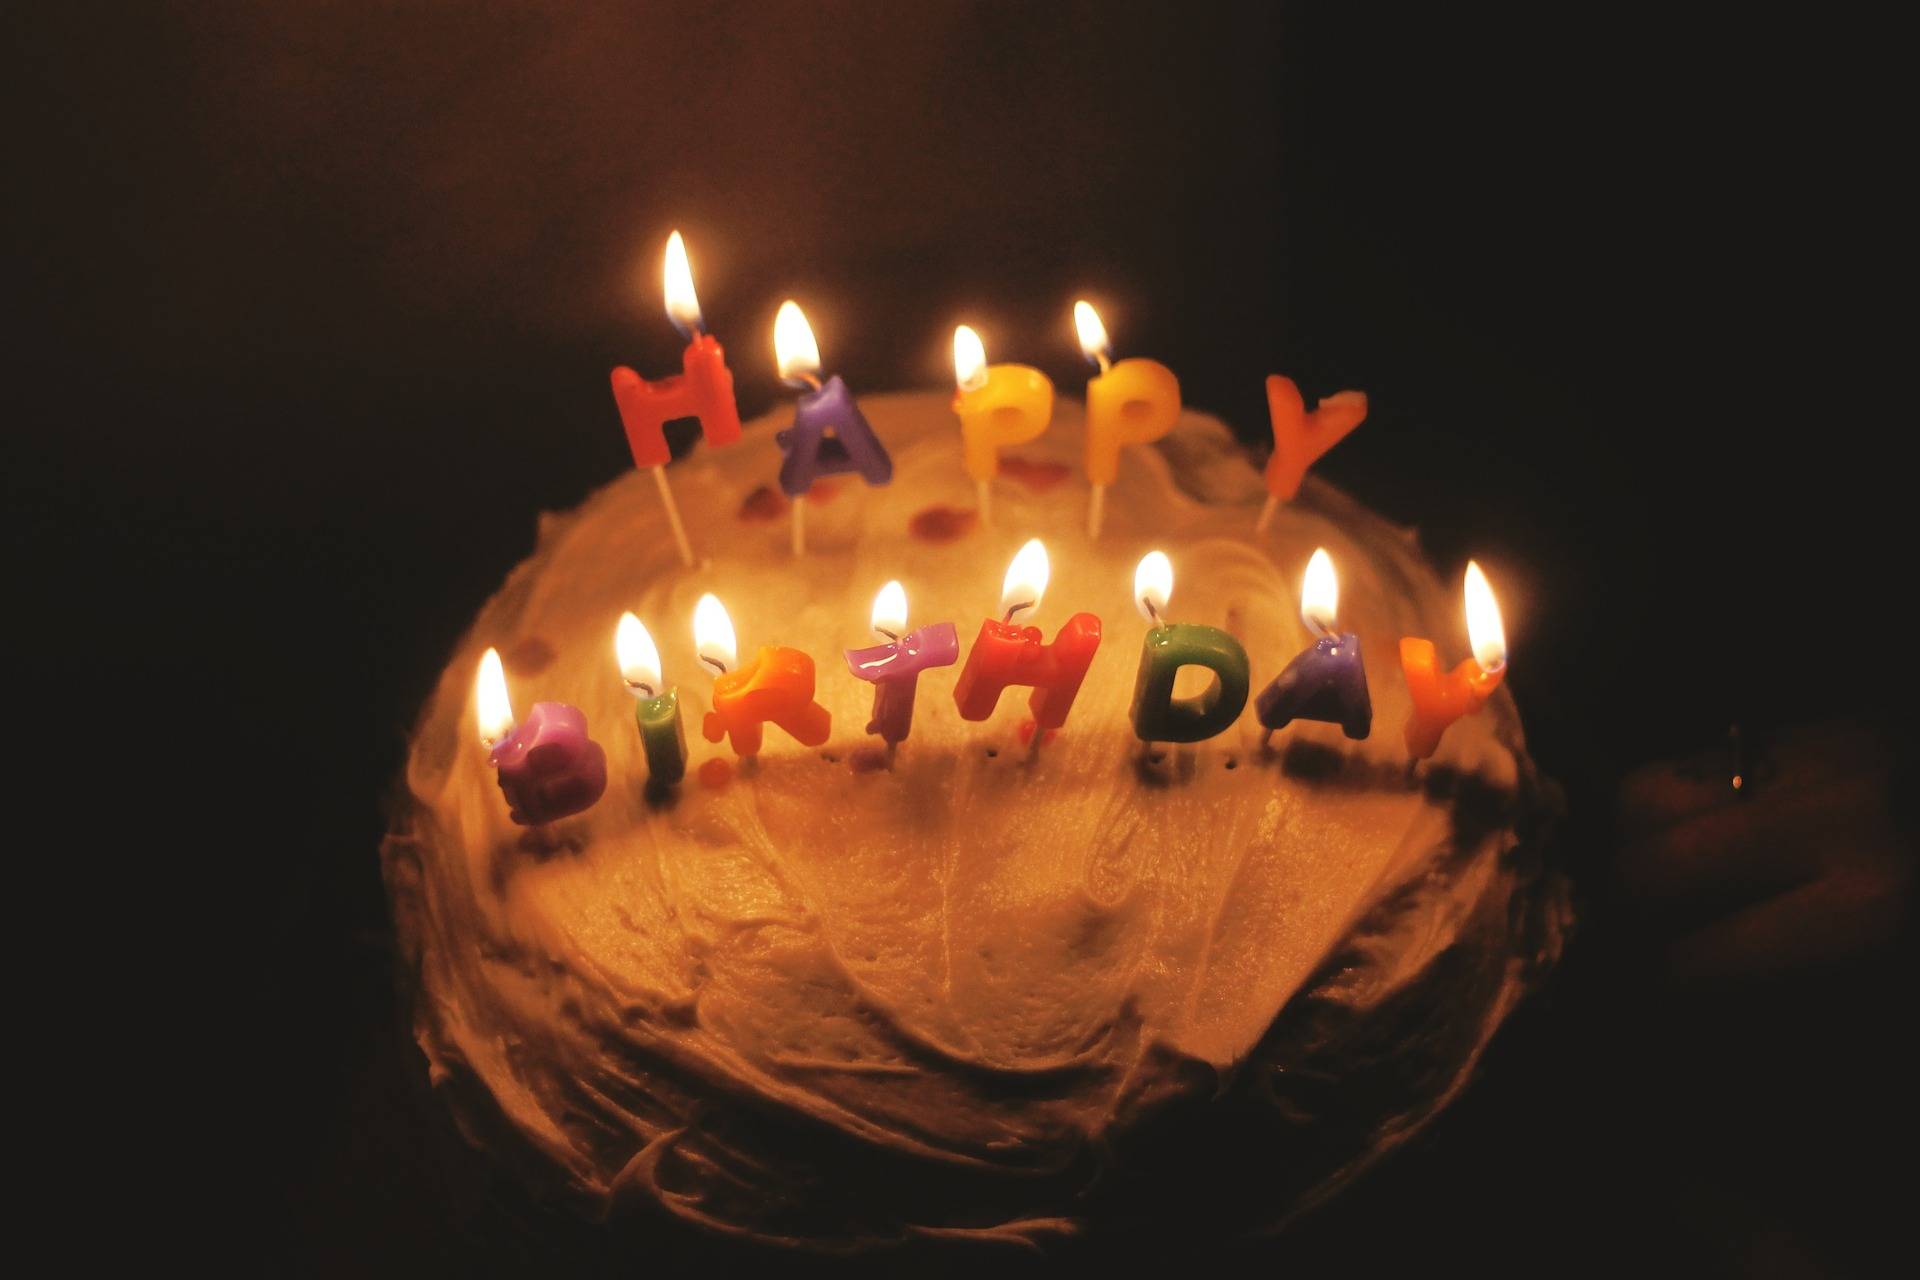 CBC would like to Wish Jeff VanOrnam our Business Development Director and CEO Mike Green a Happy B-Day! post thumbnail image